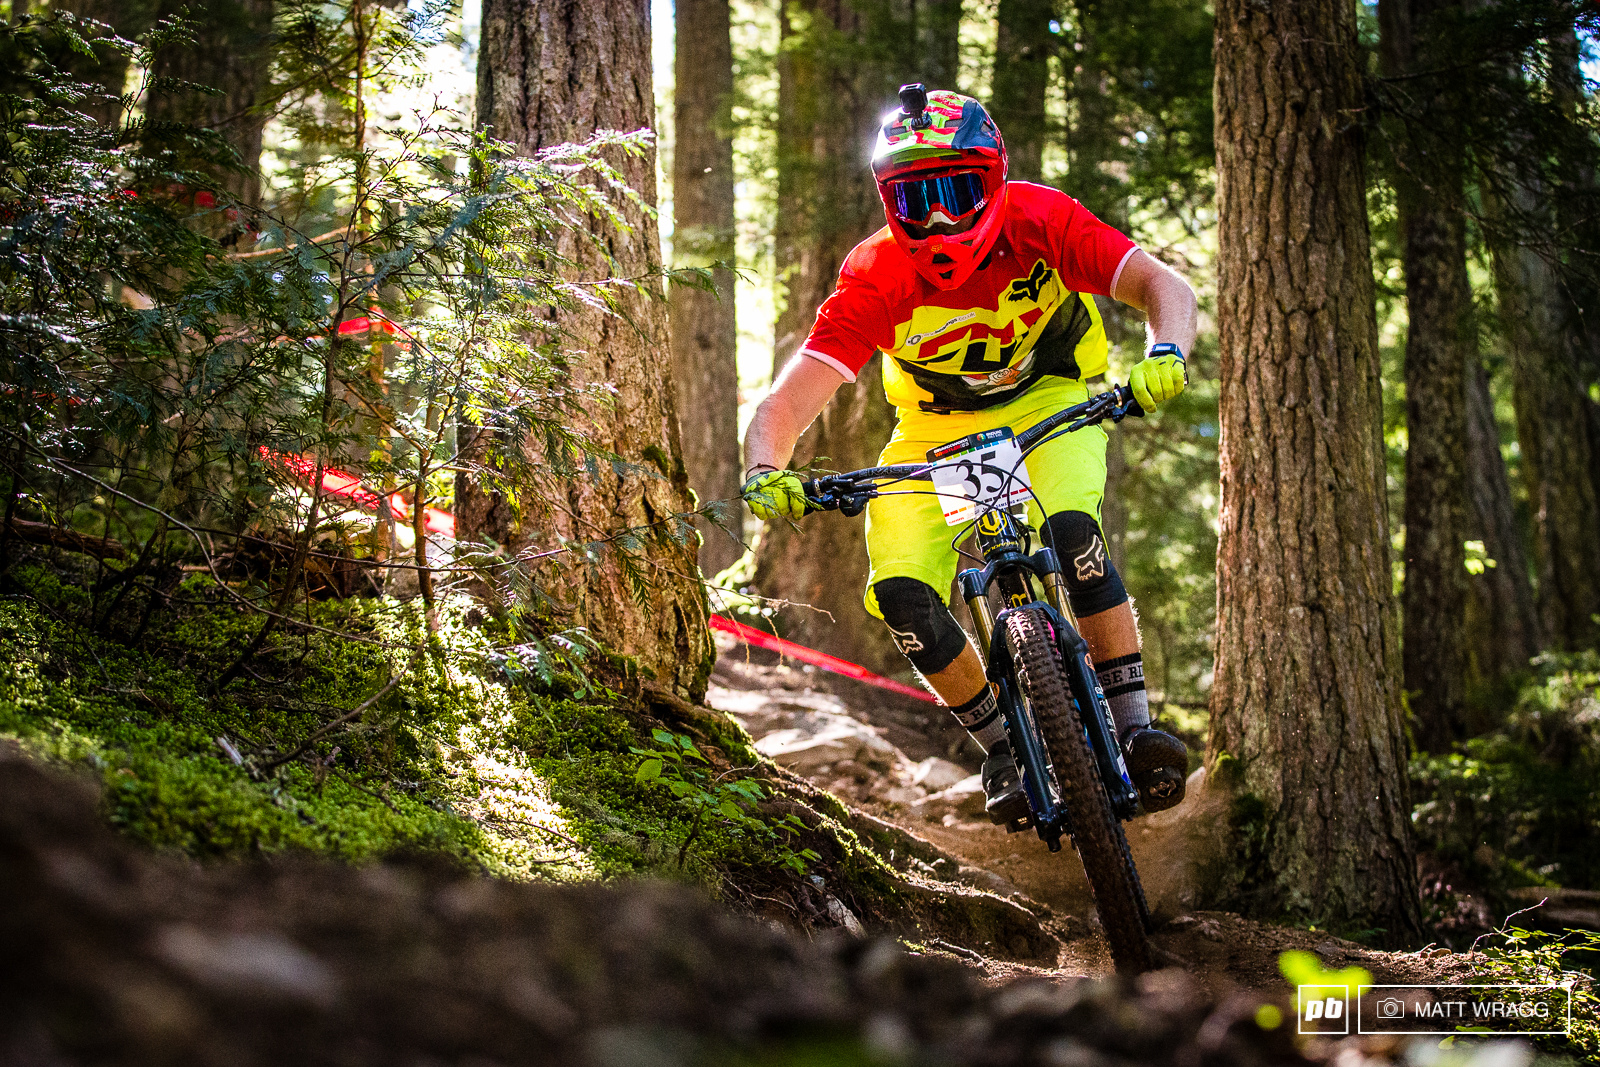 Matt Stuttard is looking to build on his stage win in Aspen this weekend.